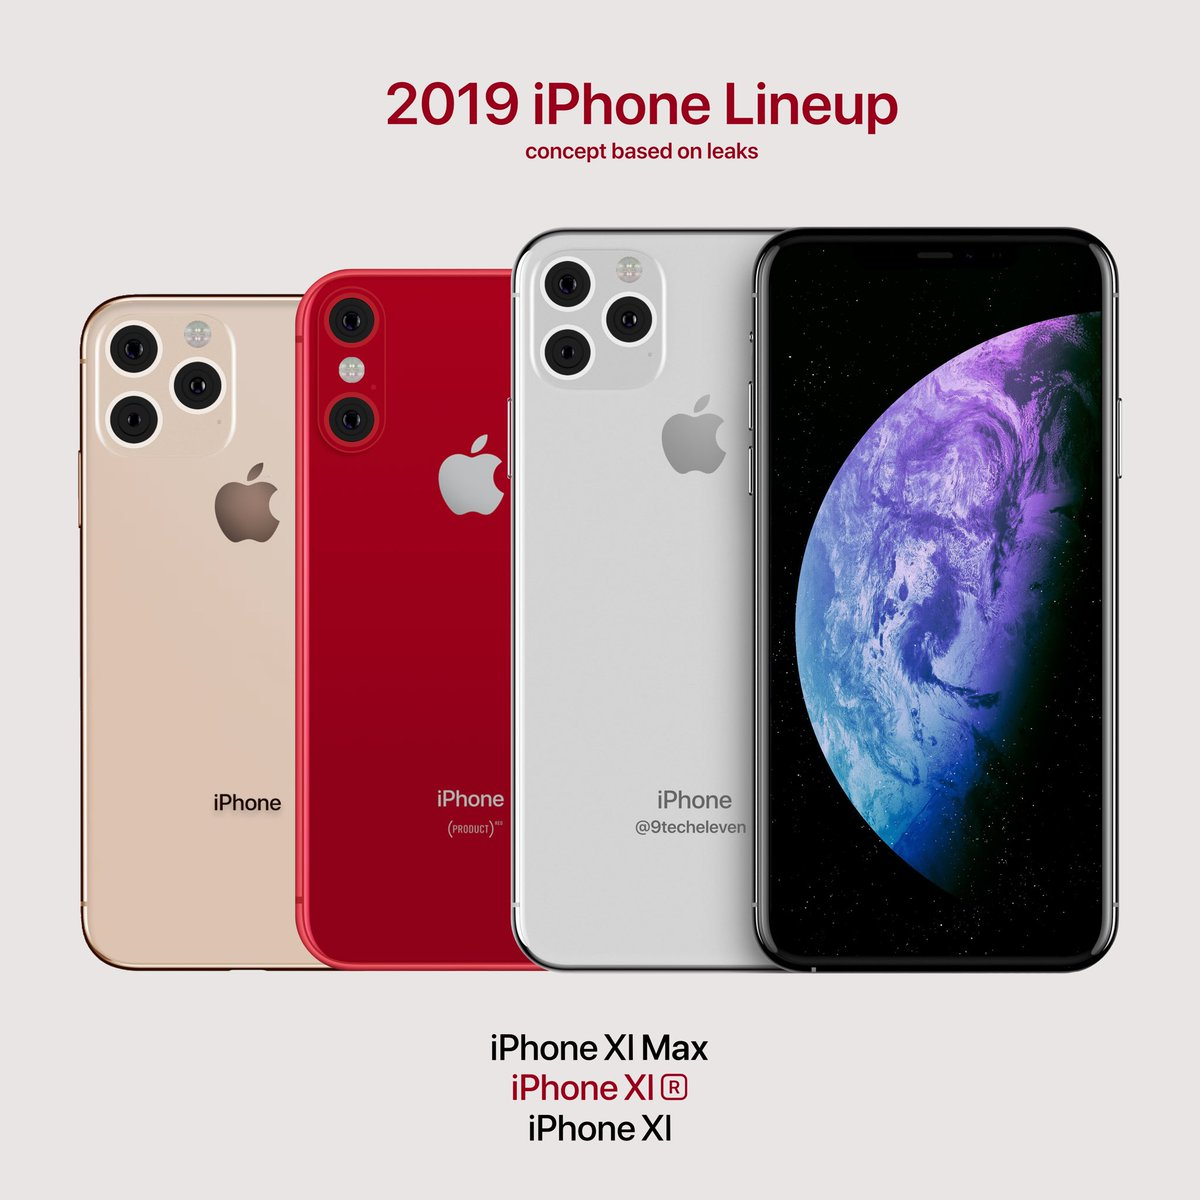 9techeleven Pa Twitter 2019 Iphone Lineup Concept With